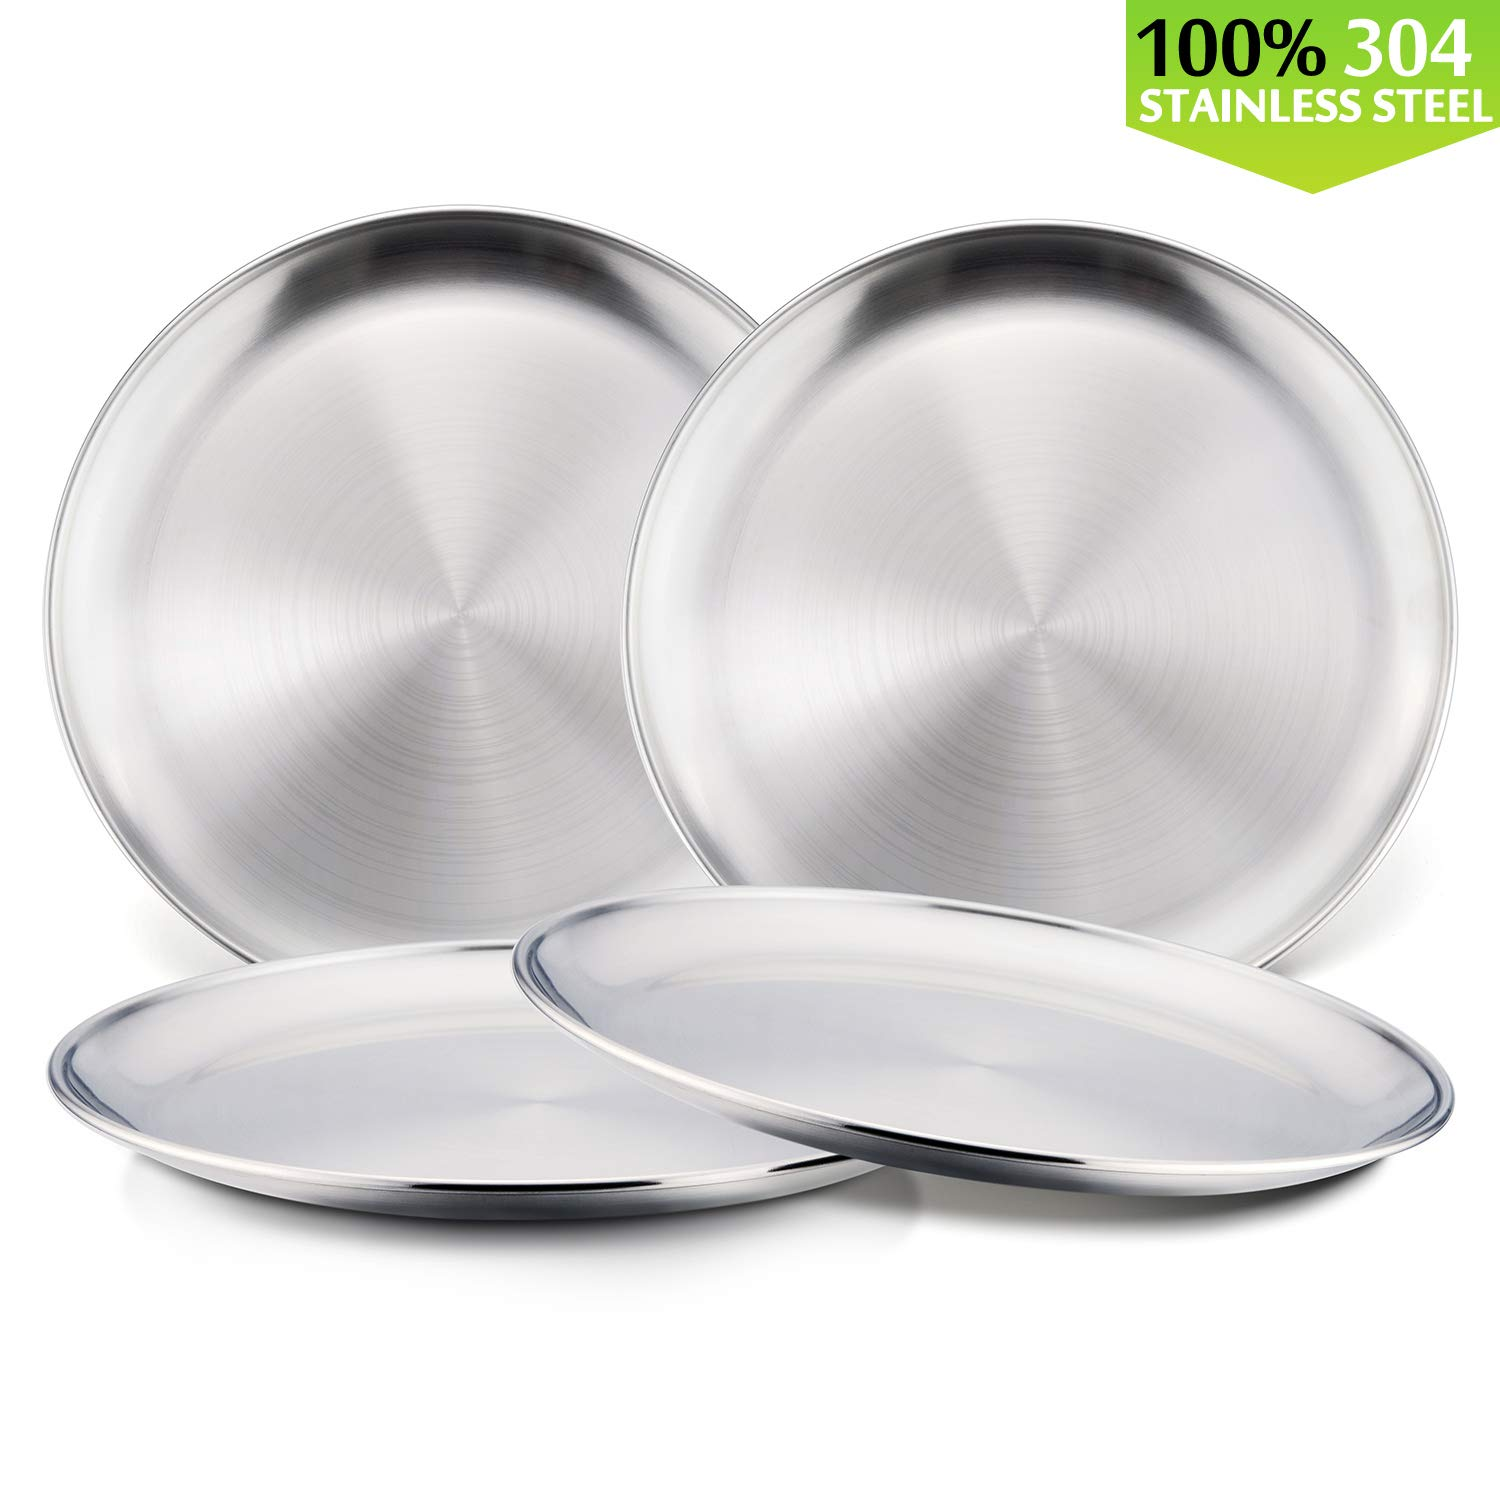 Toddlers Kids 18/8 Stainless Steel Plates, HaWare Eco Friendly Metal 304 Feeding Dinner Dishes for Serving/Snack/Camping, No Plastic and Dishwasher Safe - 4 Pack